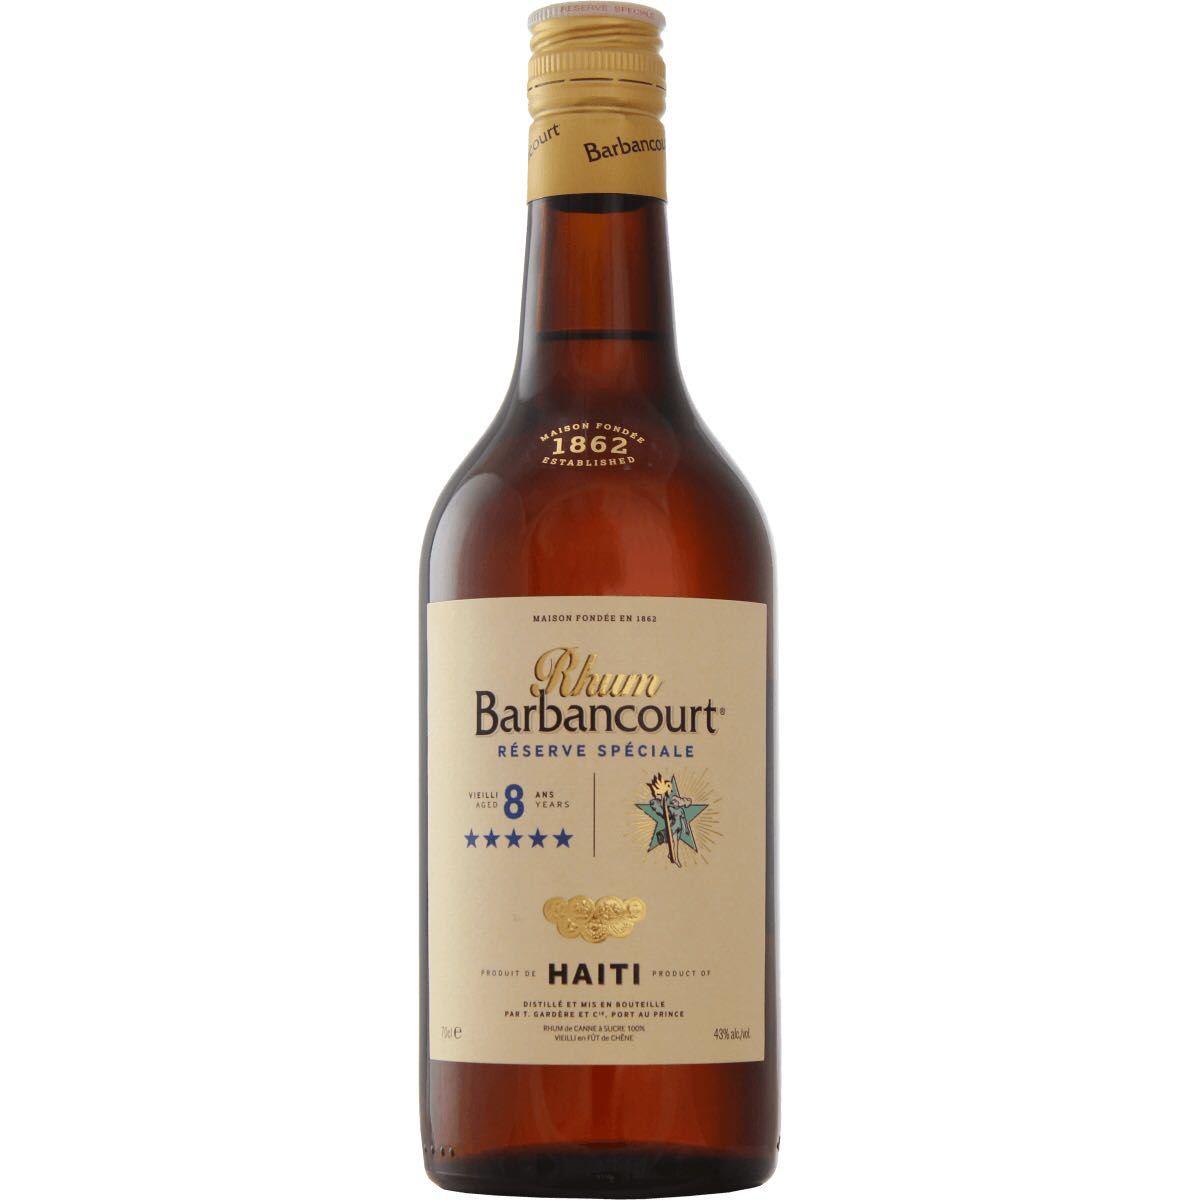 Bottle image of 5 Stars 8 Years Réserve Spéciale